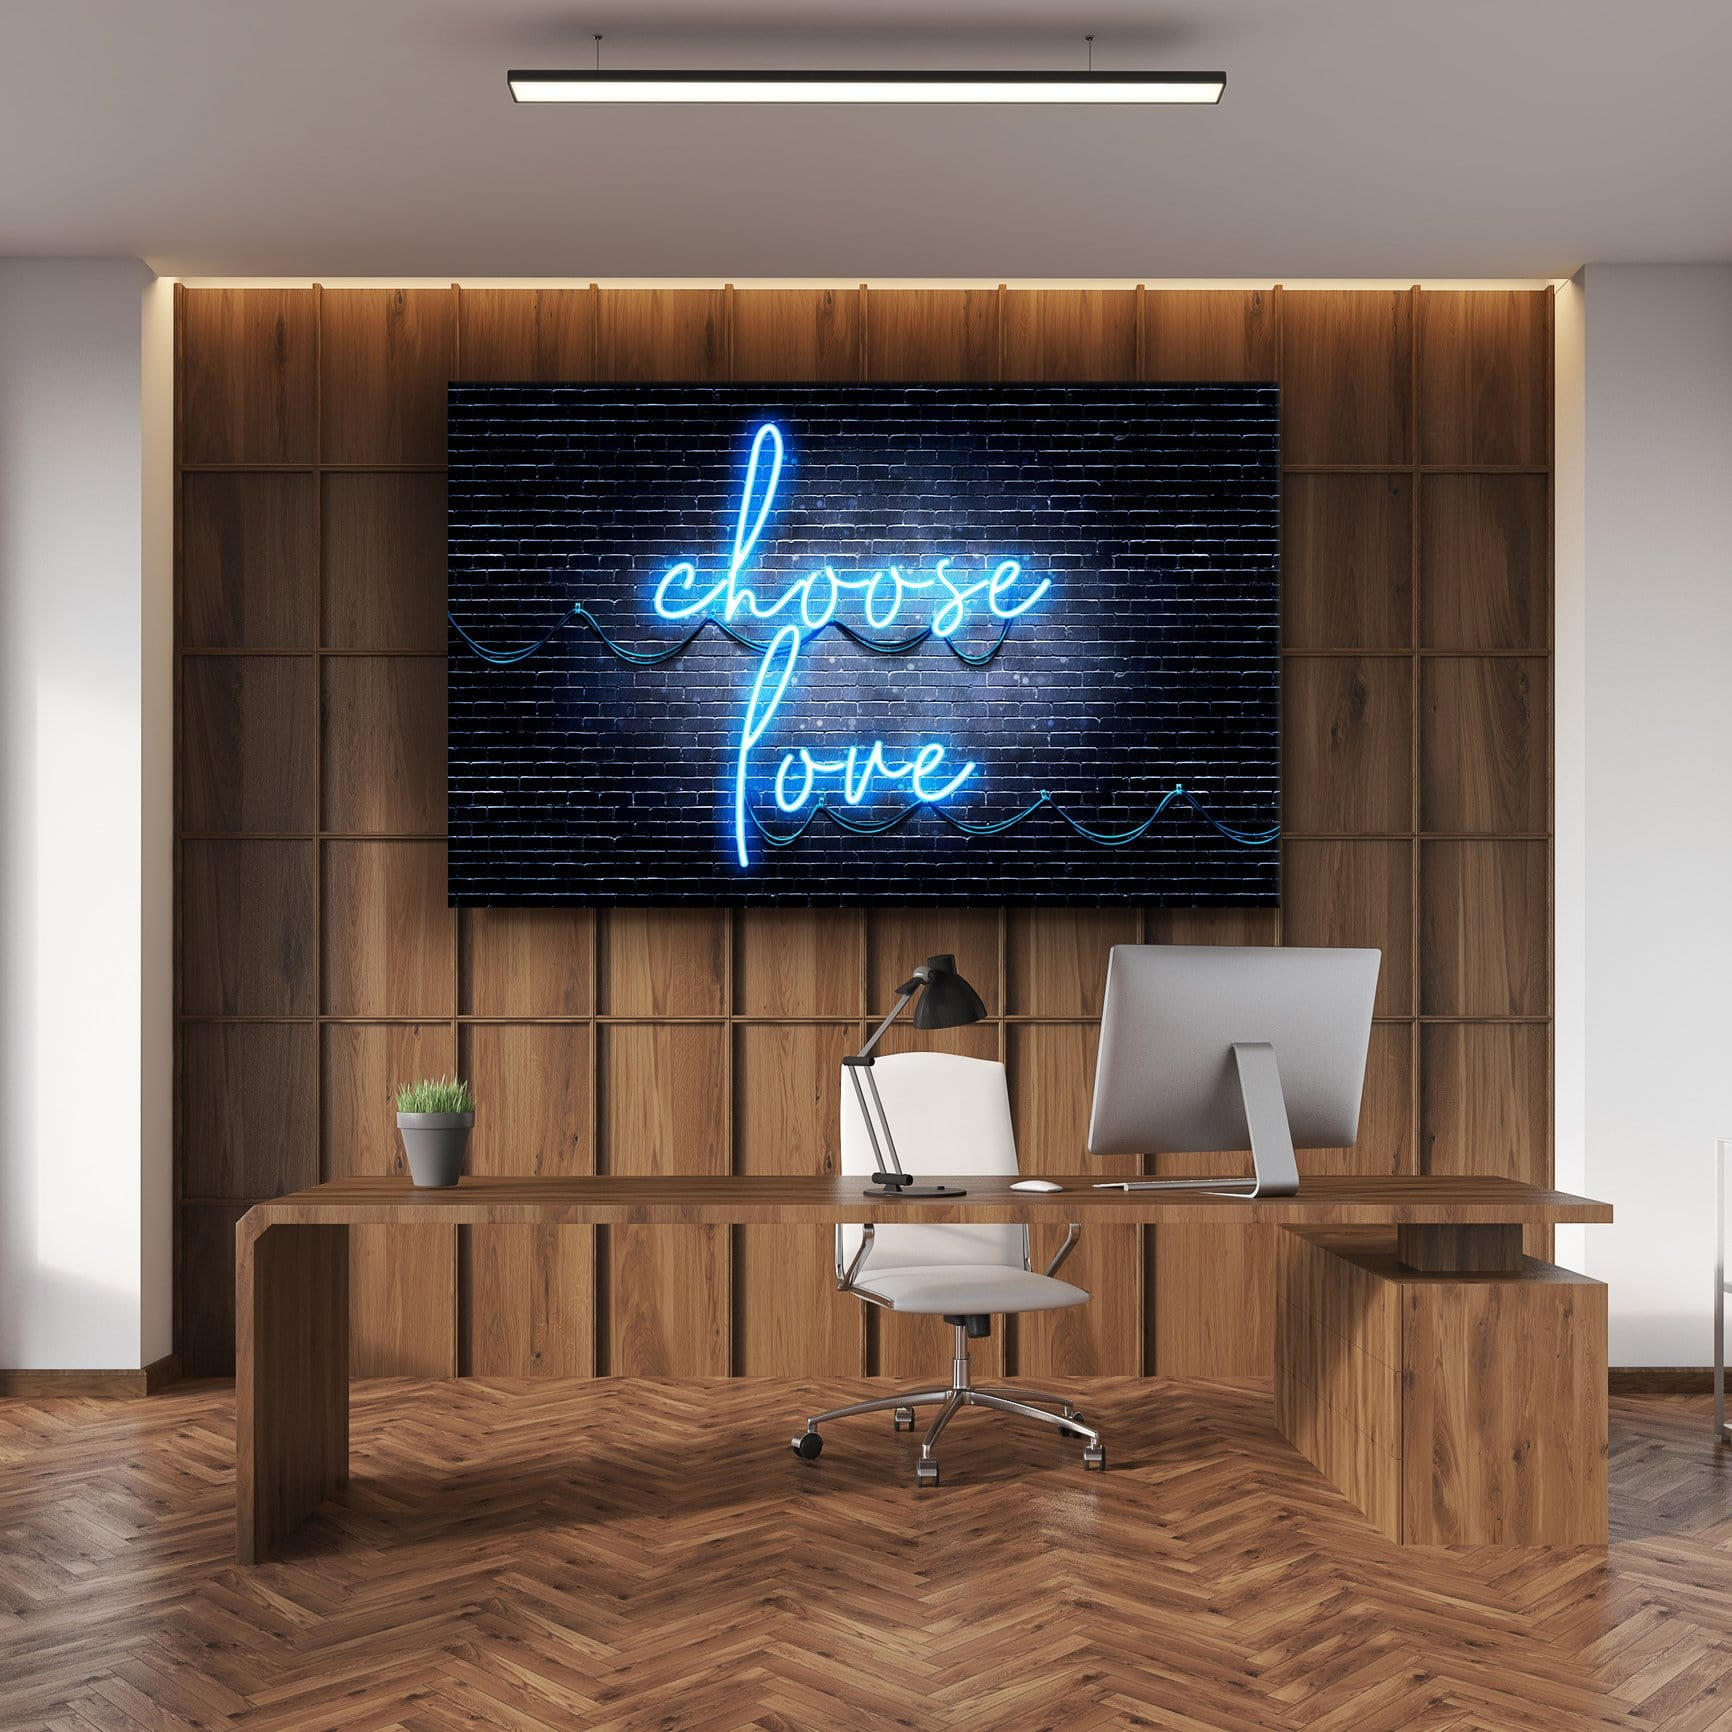 Choose Love - Framed Canvas Painting Wall Art Office Decor, large modern pop artwork for home or office, Entrepreneur Inspirational and motivational Quotes on Canvas great for man cave or home. Perfect for Artwork Addicts. Made in USA, FREE Shipping.